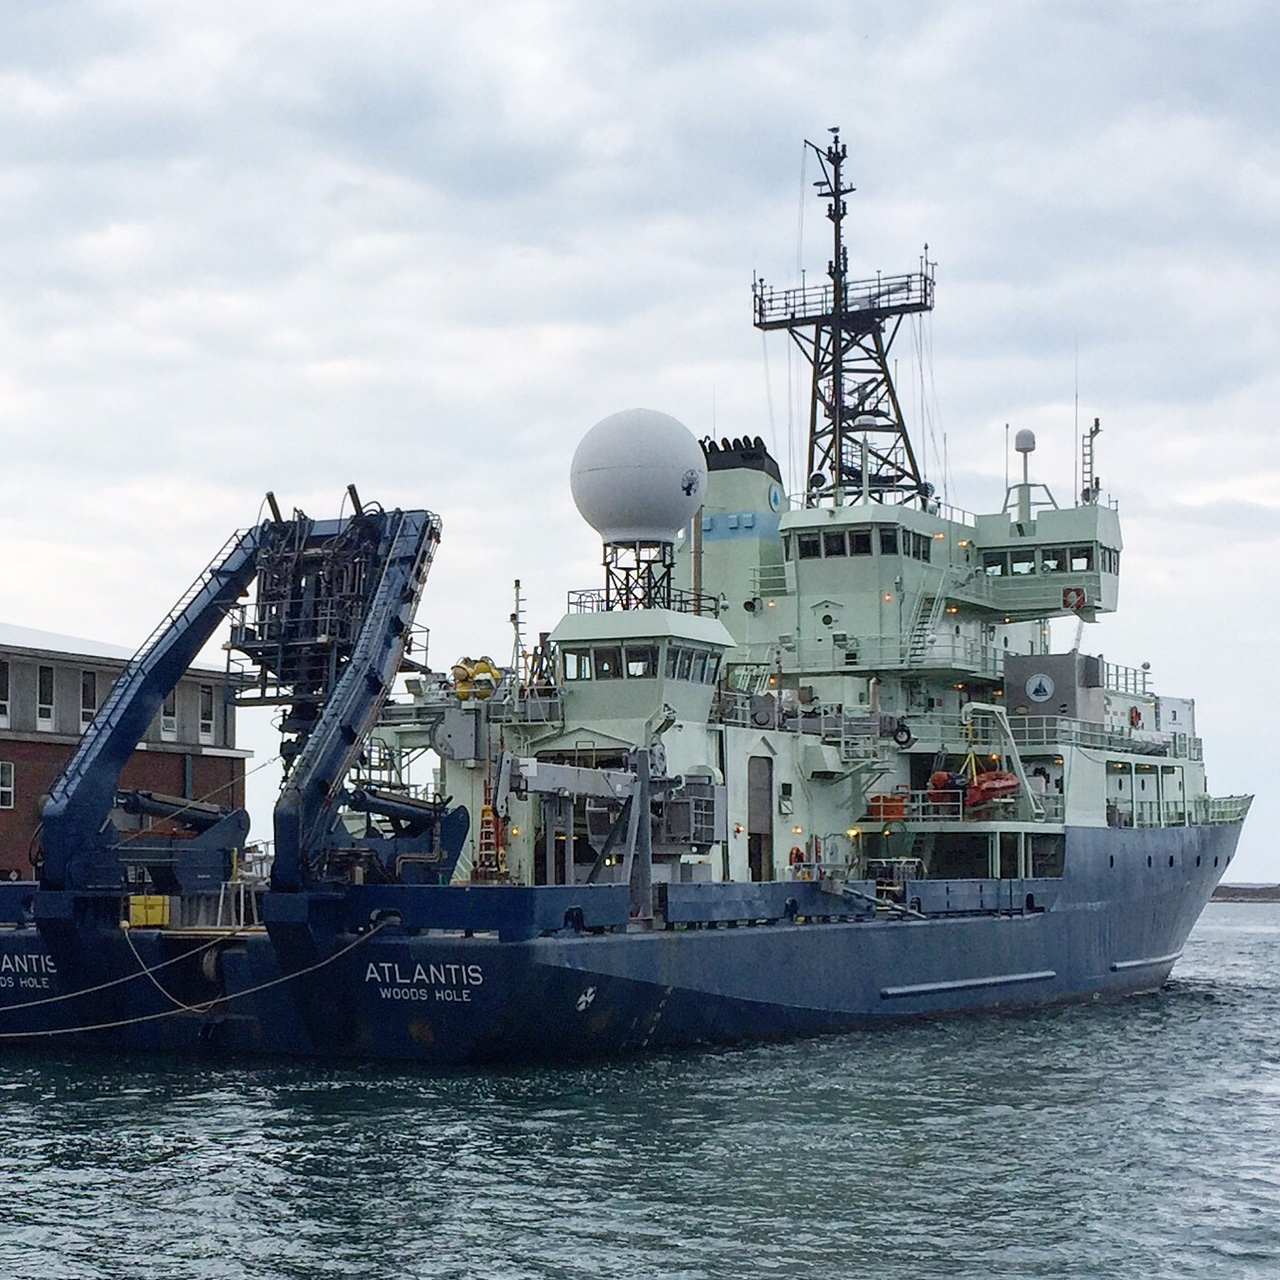 The R/V <em>Atlantis</em>, operated by the Woods Hole Oceanographic Institution (WHOI), in port.